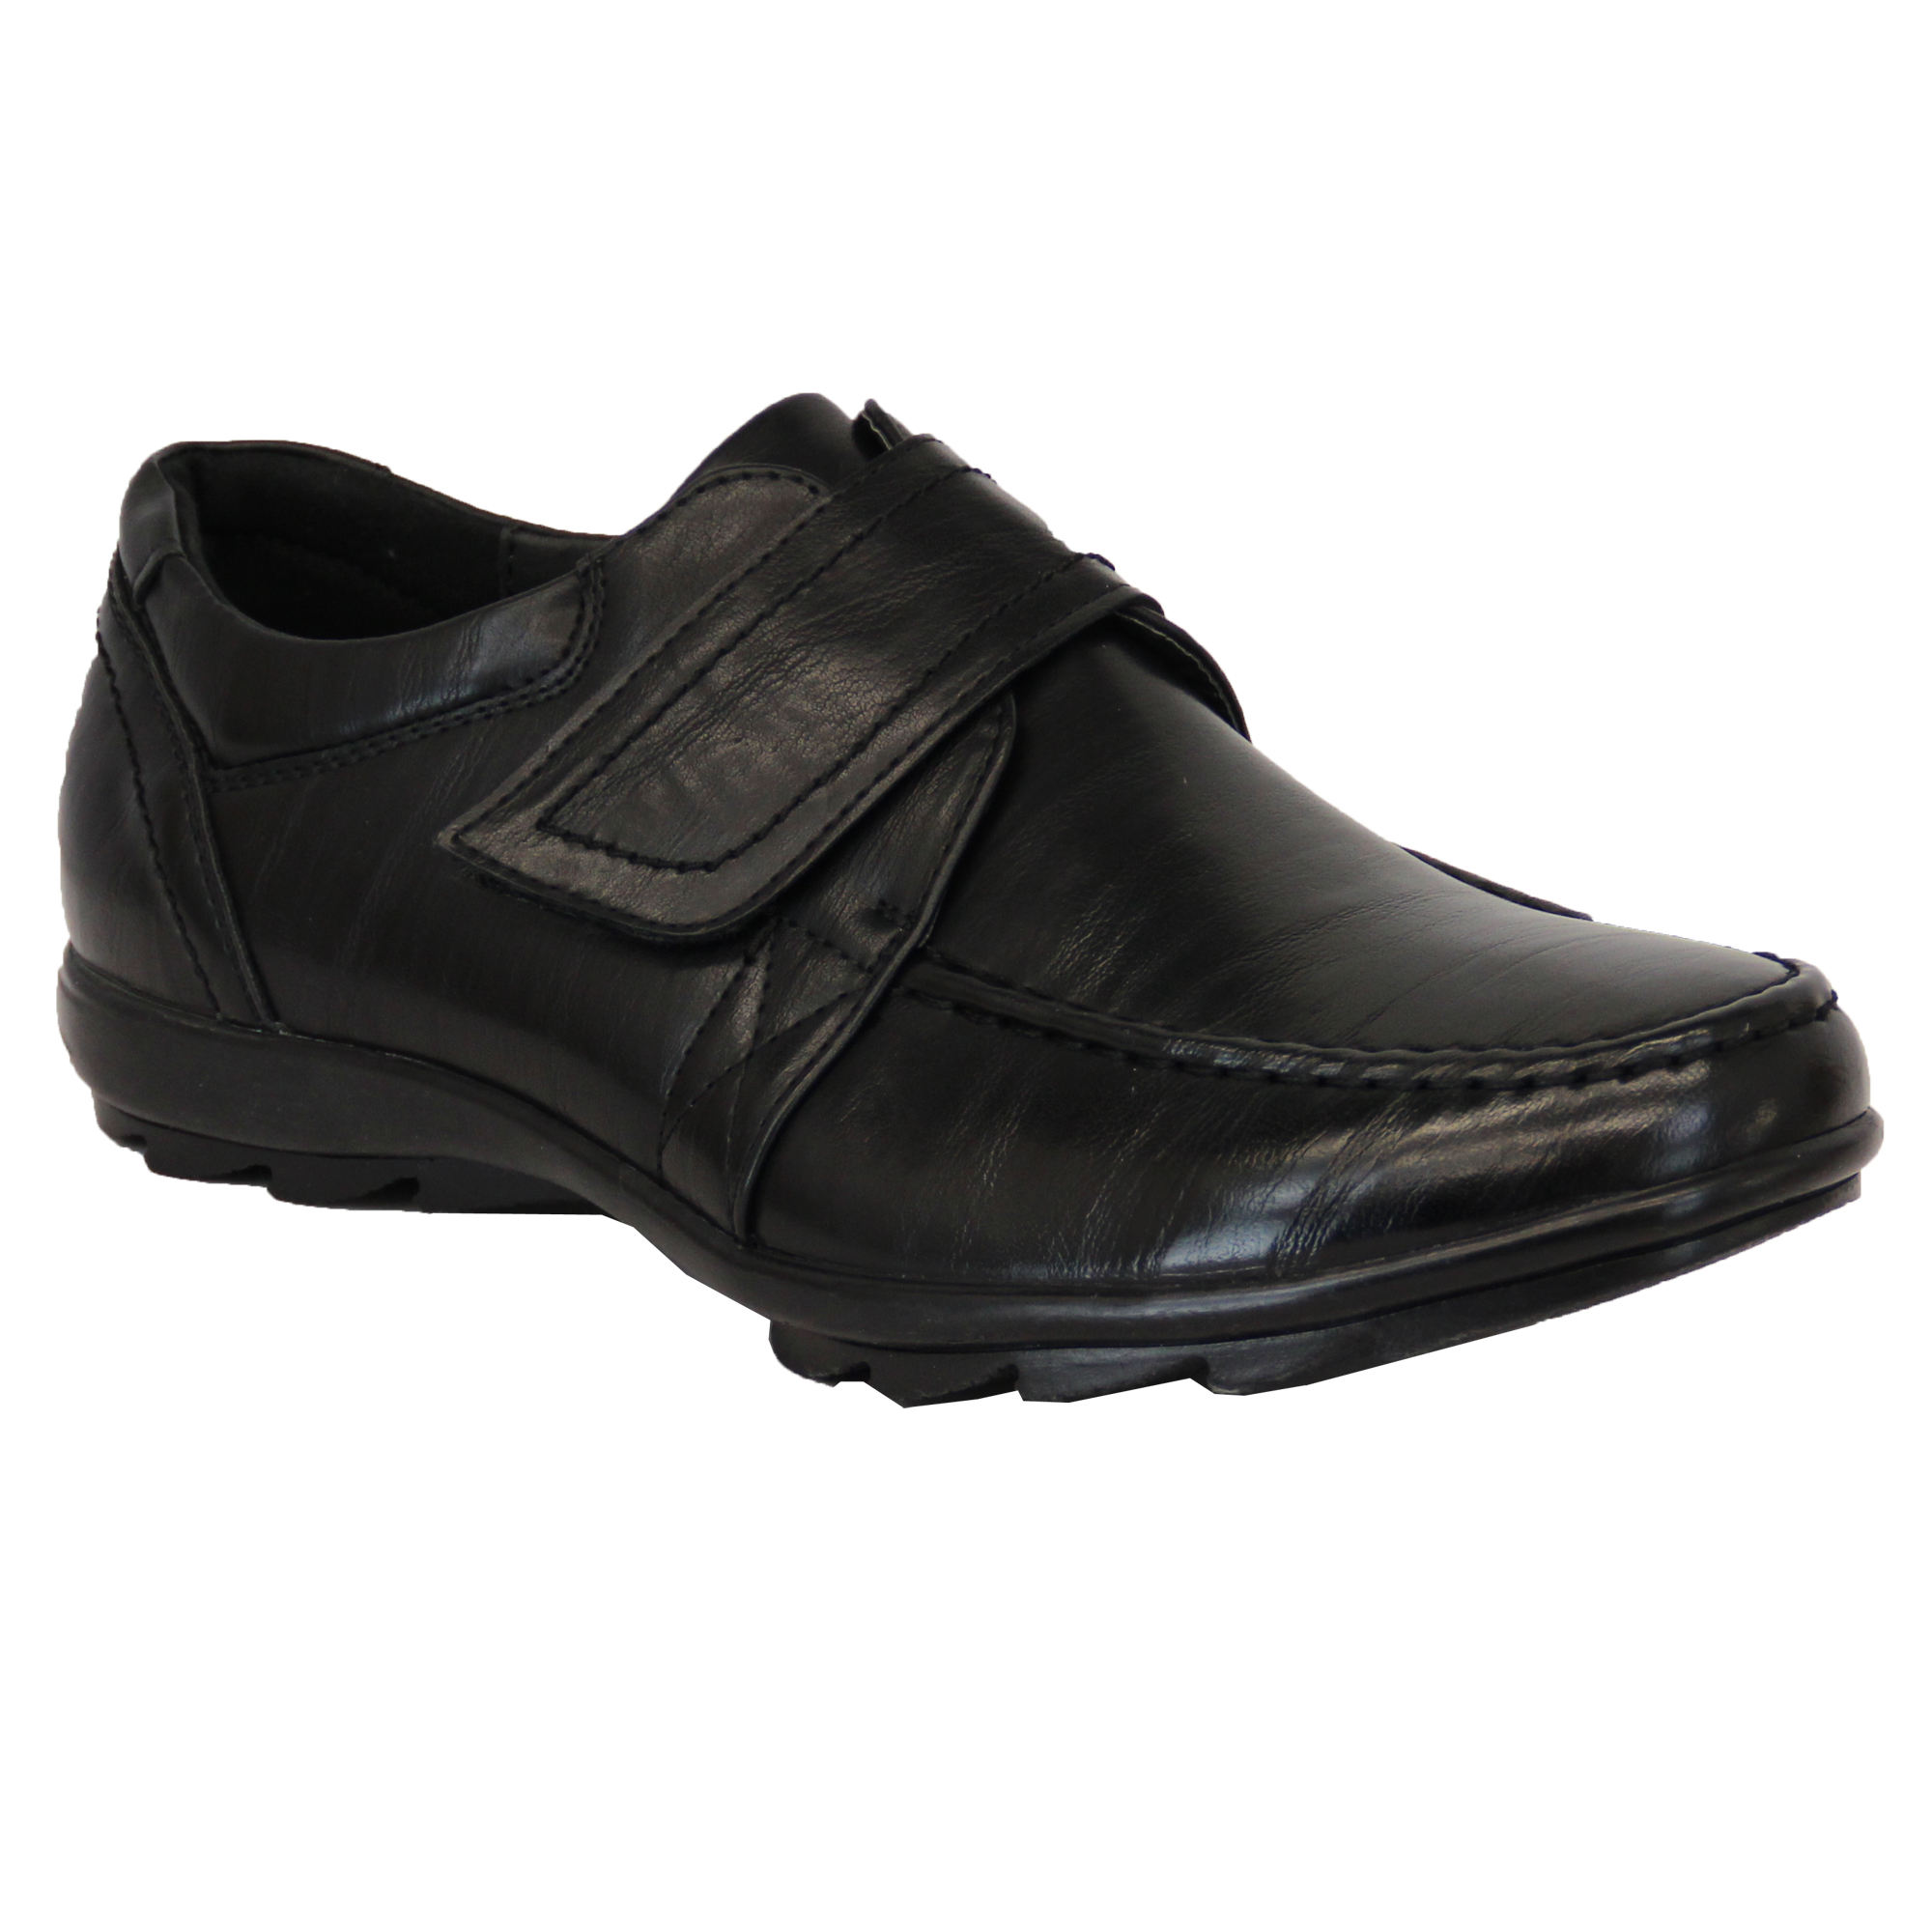 boys school shoes formal leather look velcro lace up